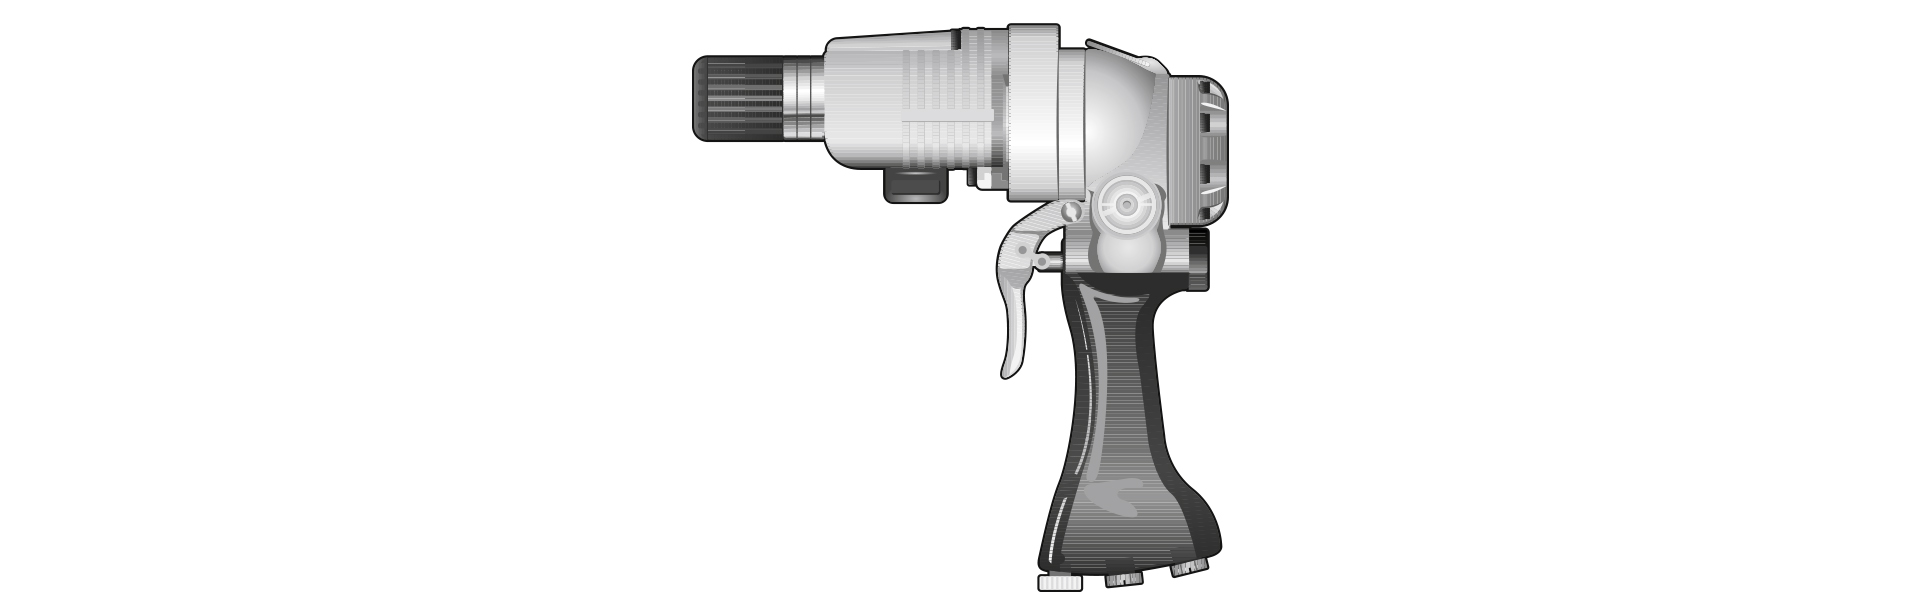 Image of a Rotary Impact Drill